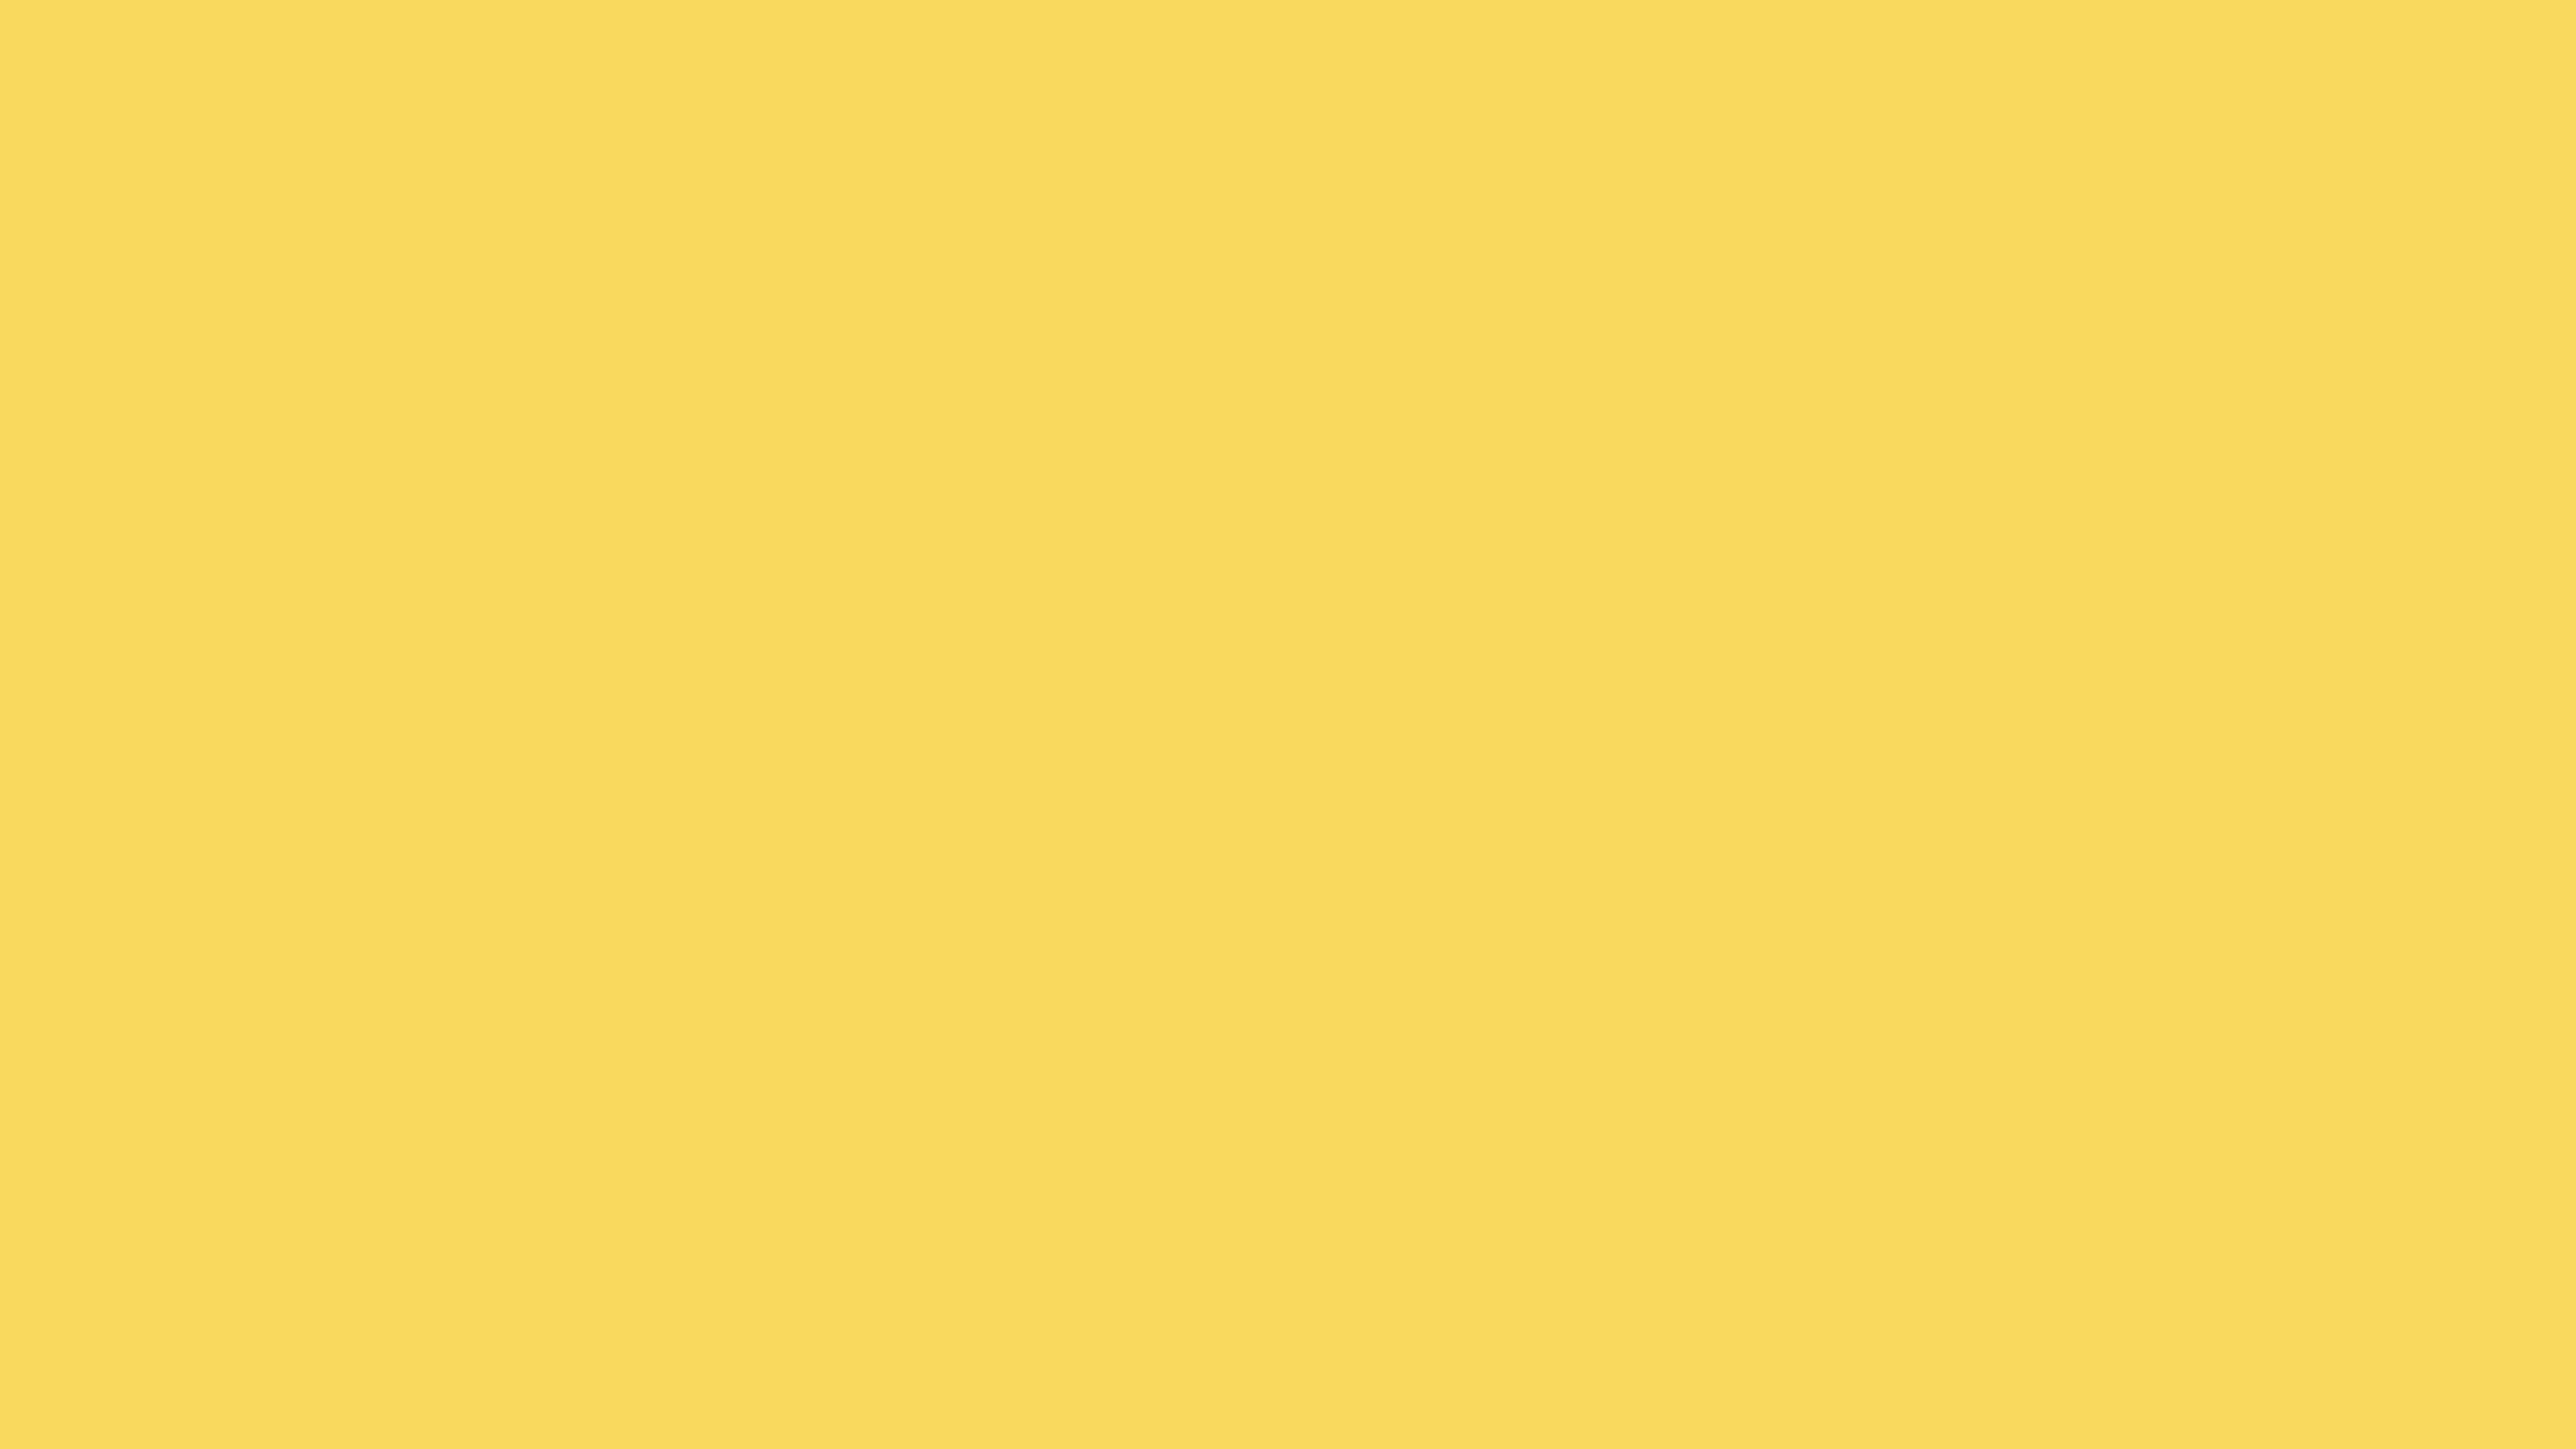 3840x2160 Naples Yellow Solid Color Background